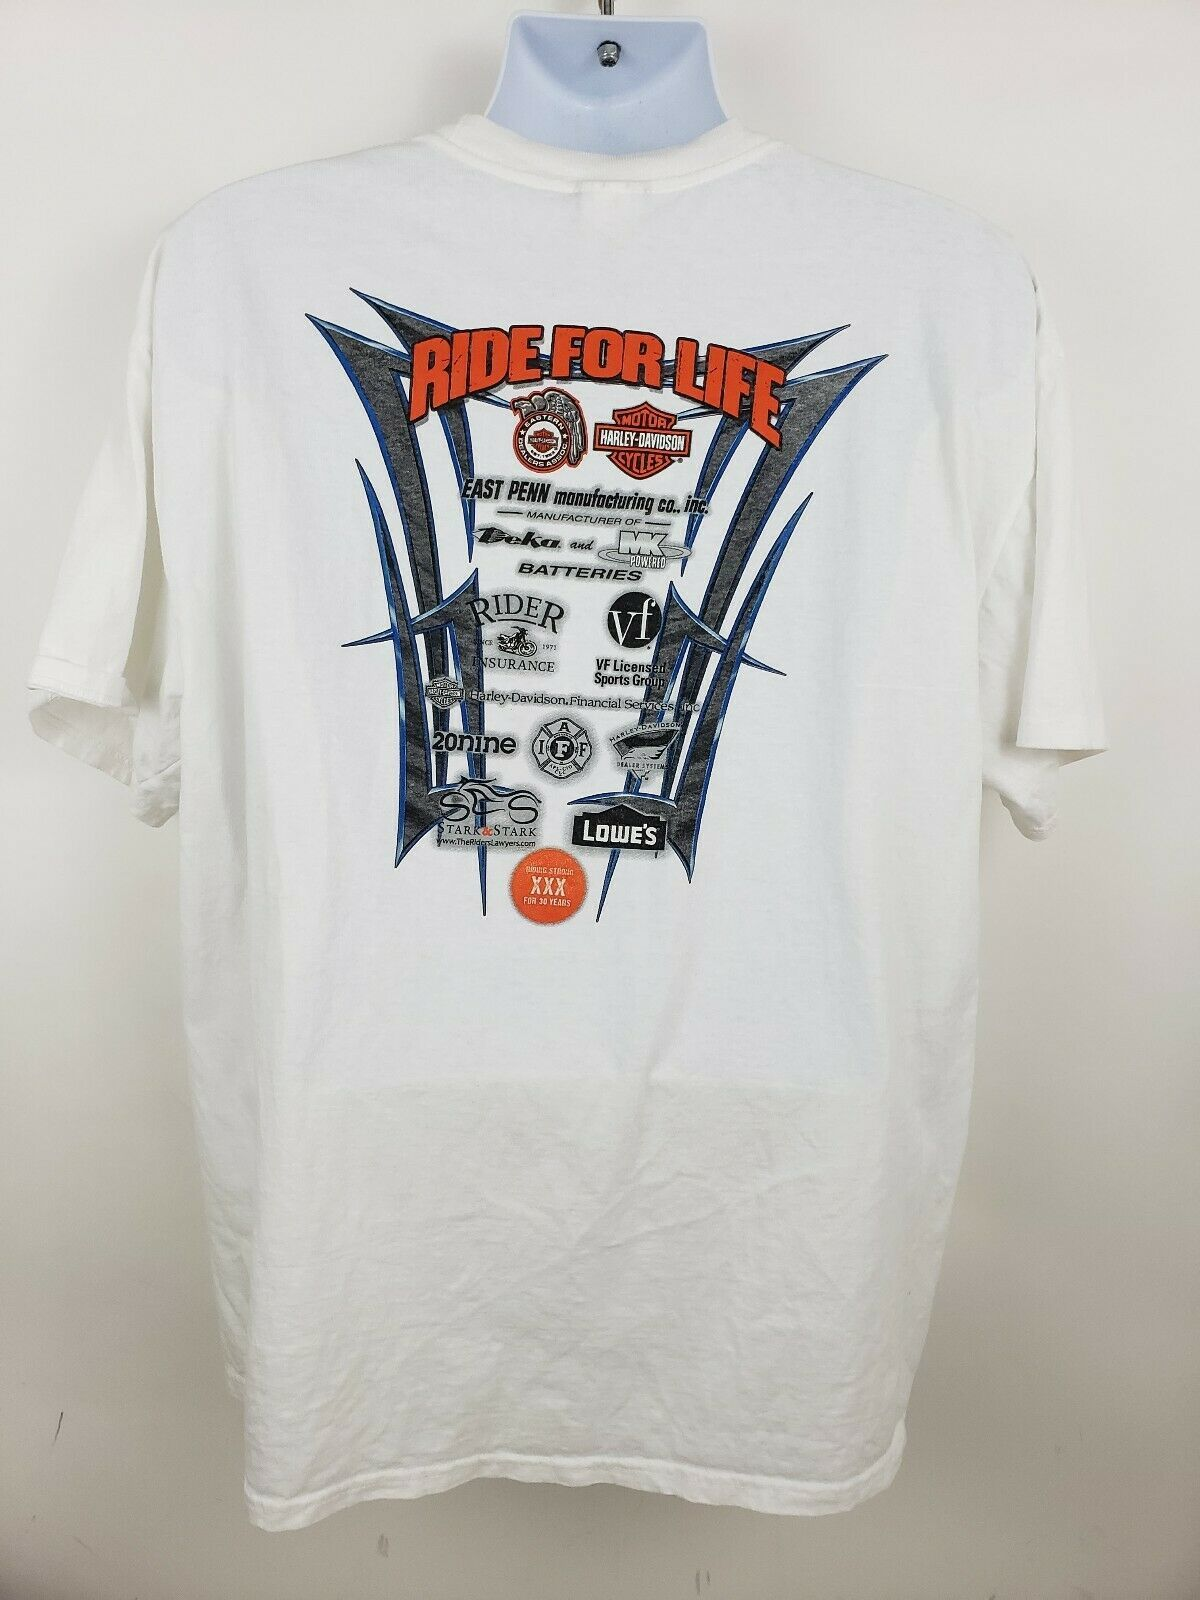 Harley Davidson Ride For Life Charity T-shirt White Size XL Eagle image 3